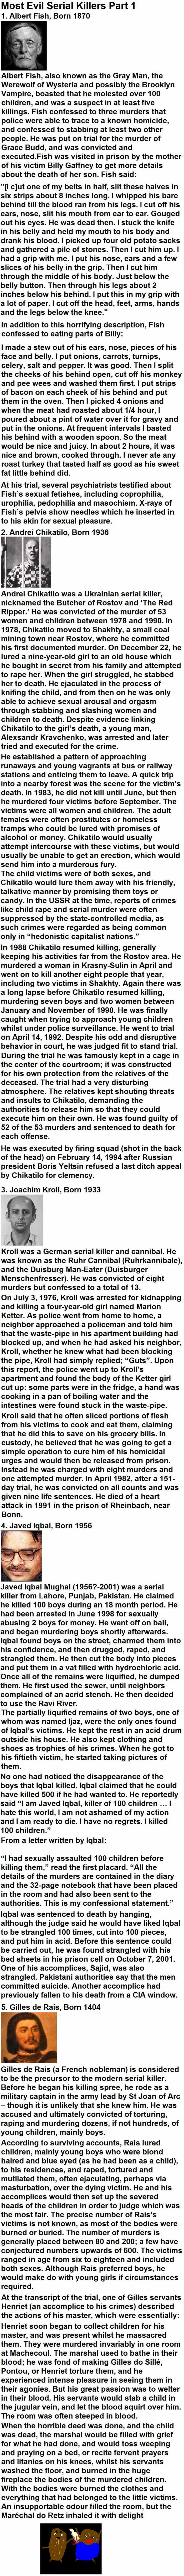 Most Evil Serial Killers Part 1